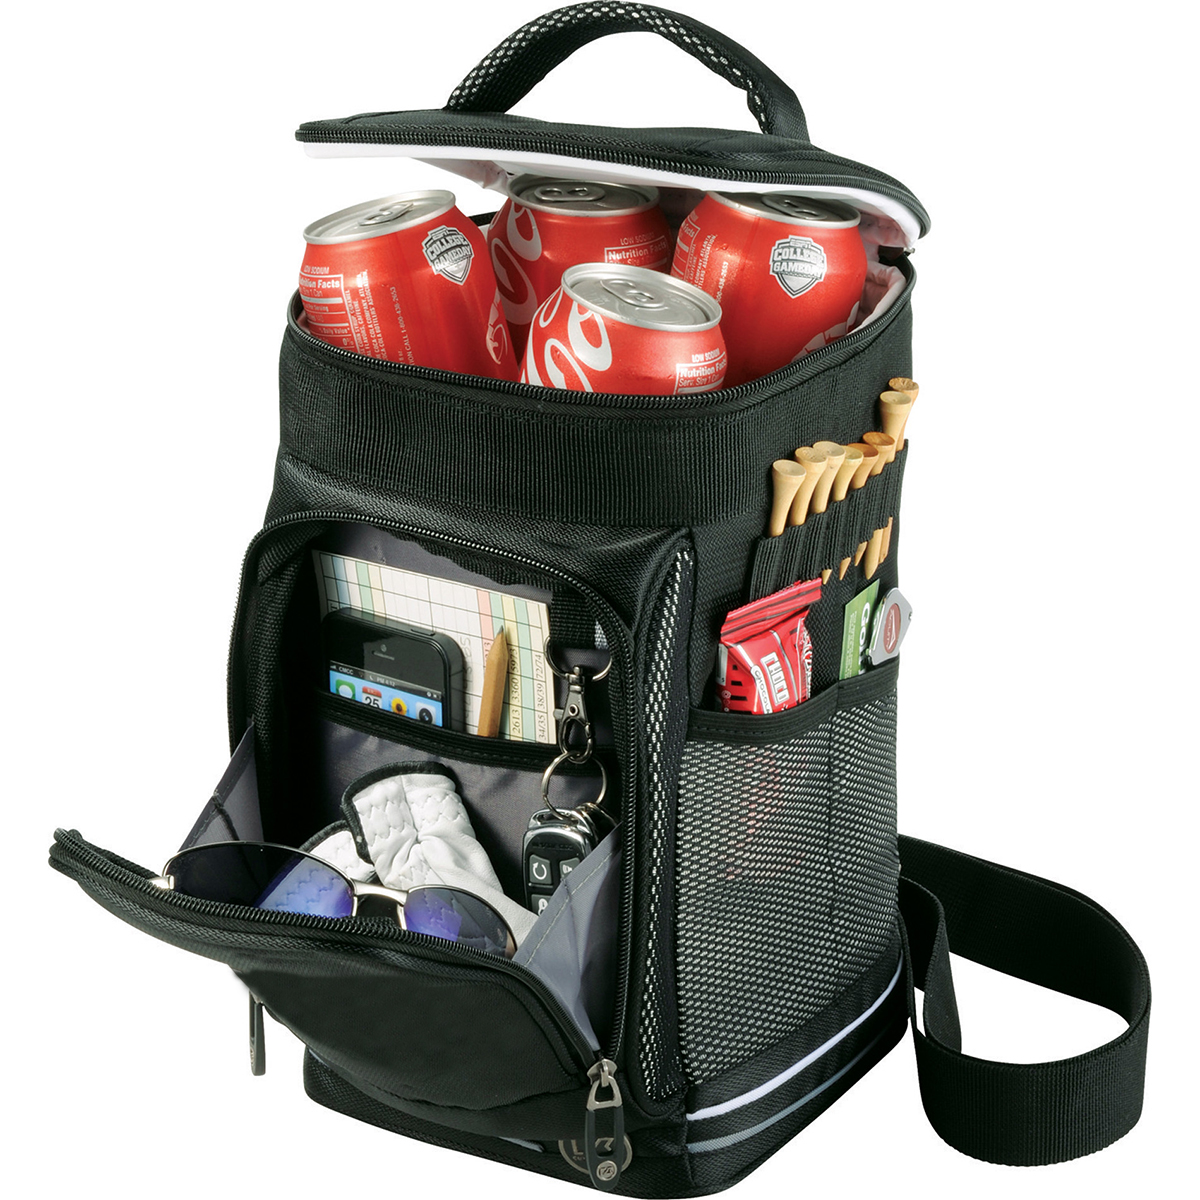 Sports Pro Golf Beverage Cooler Zippered Compartment Bag